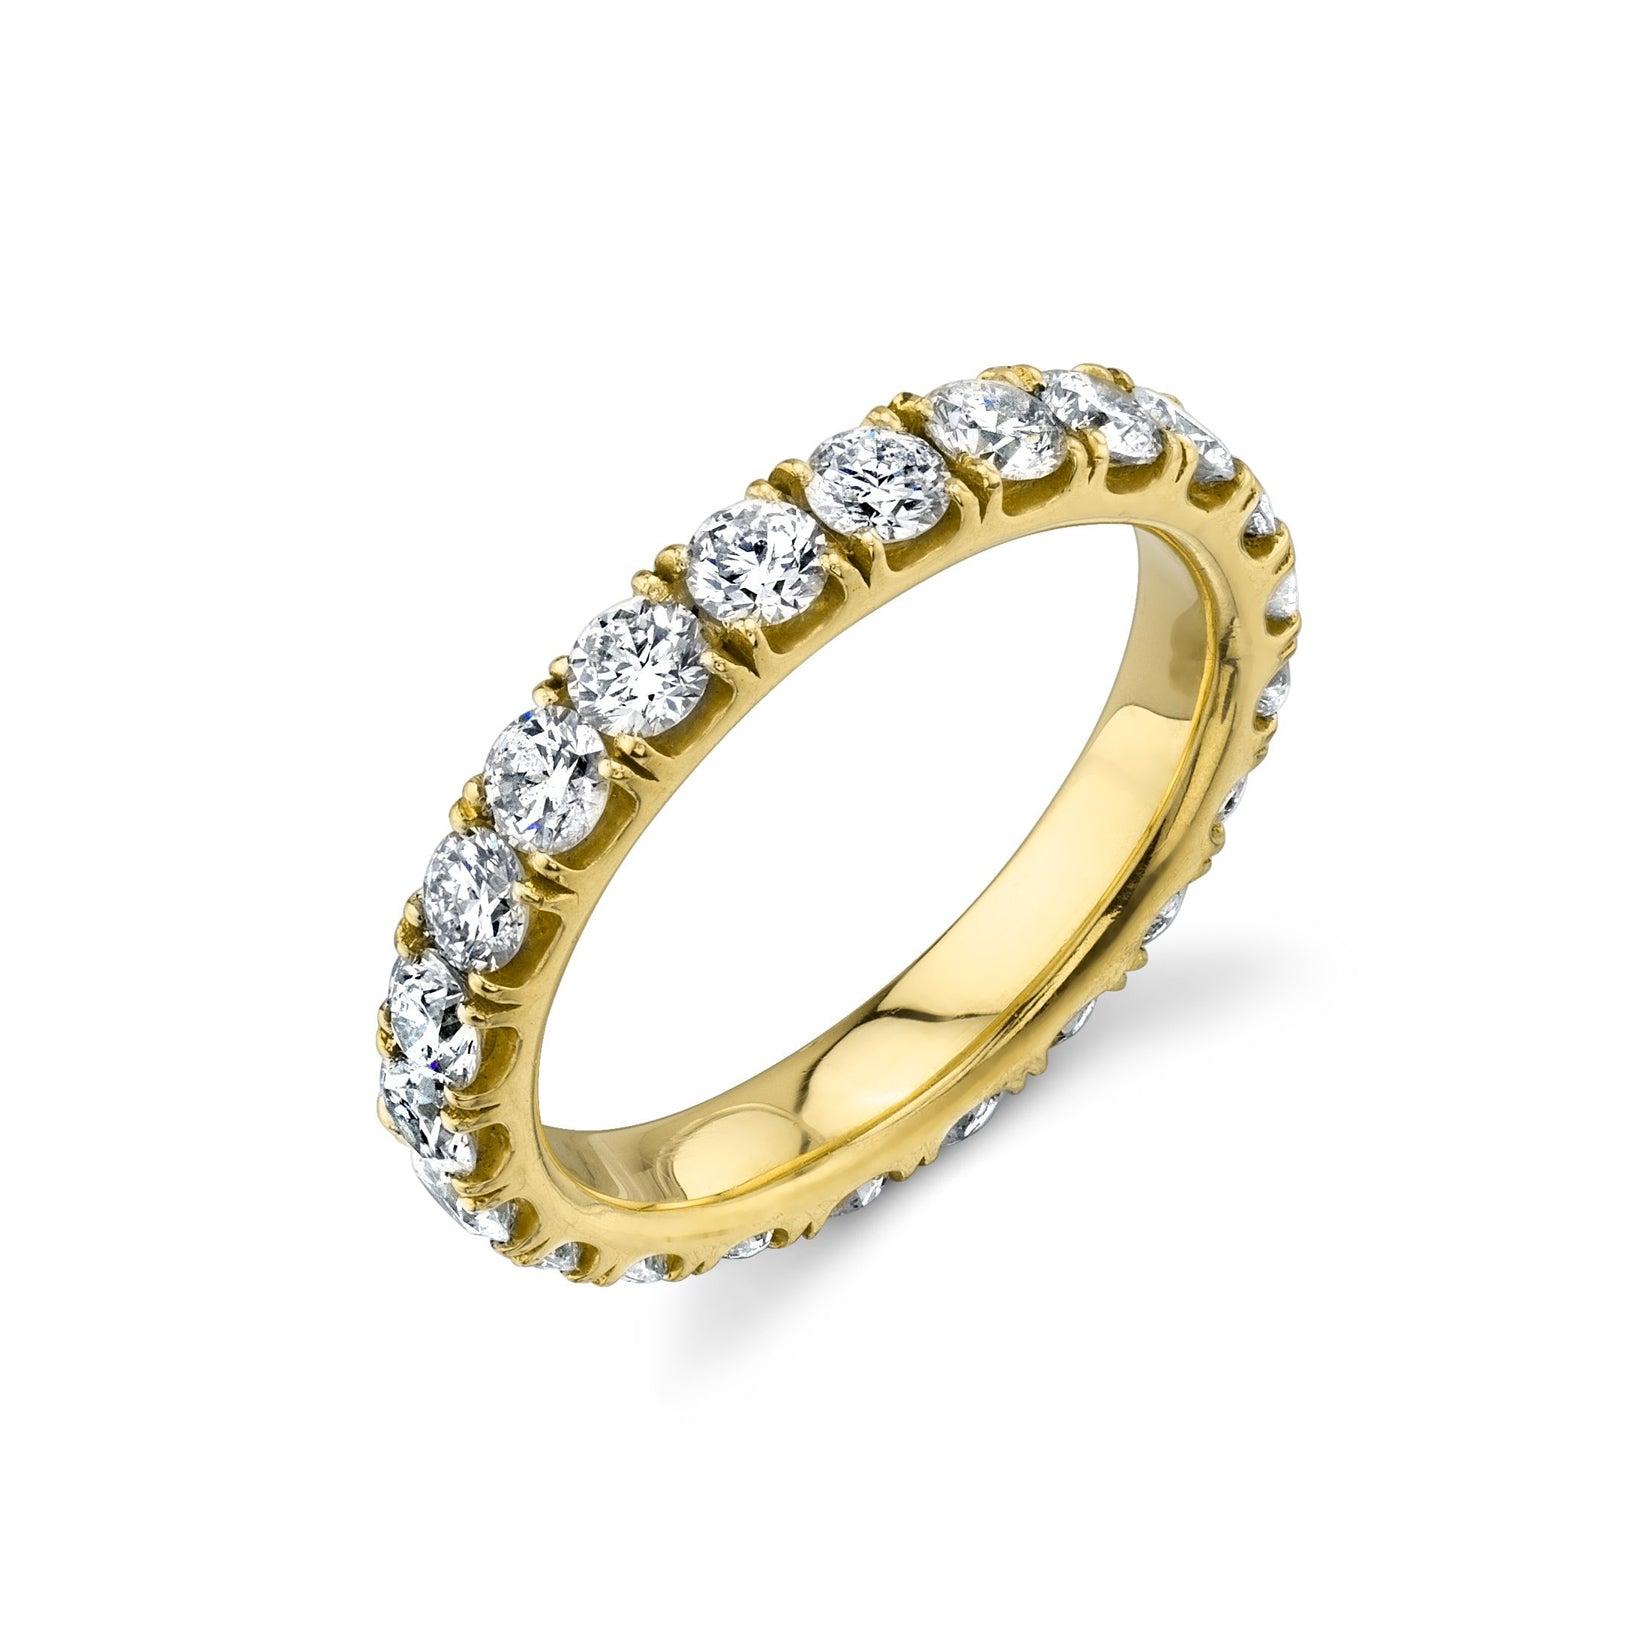 Master Axis Ring With White Diamonds - Gabriela Artigas